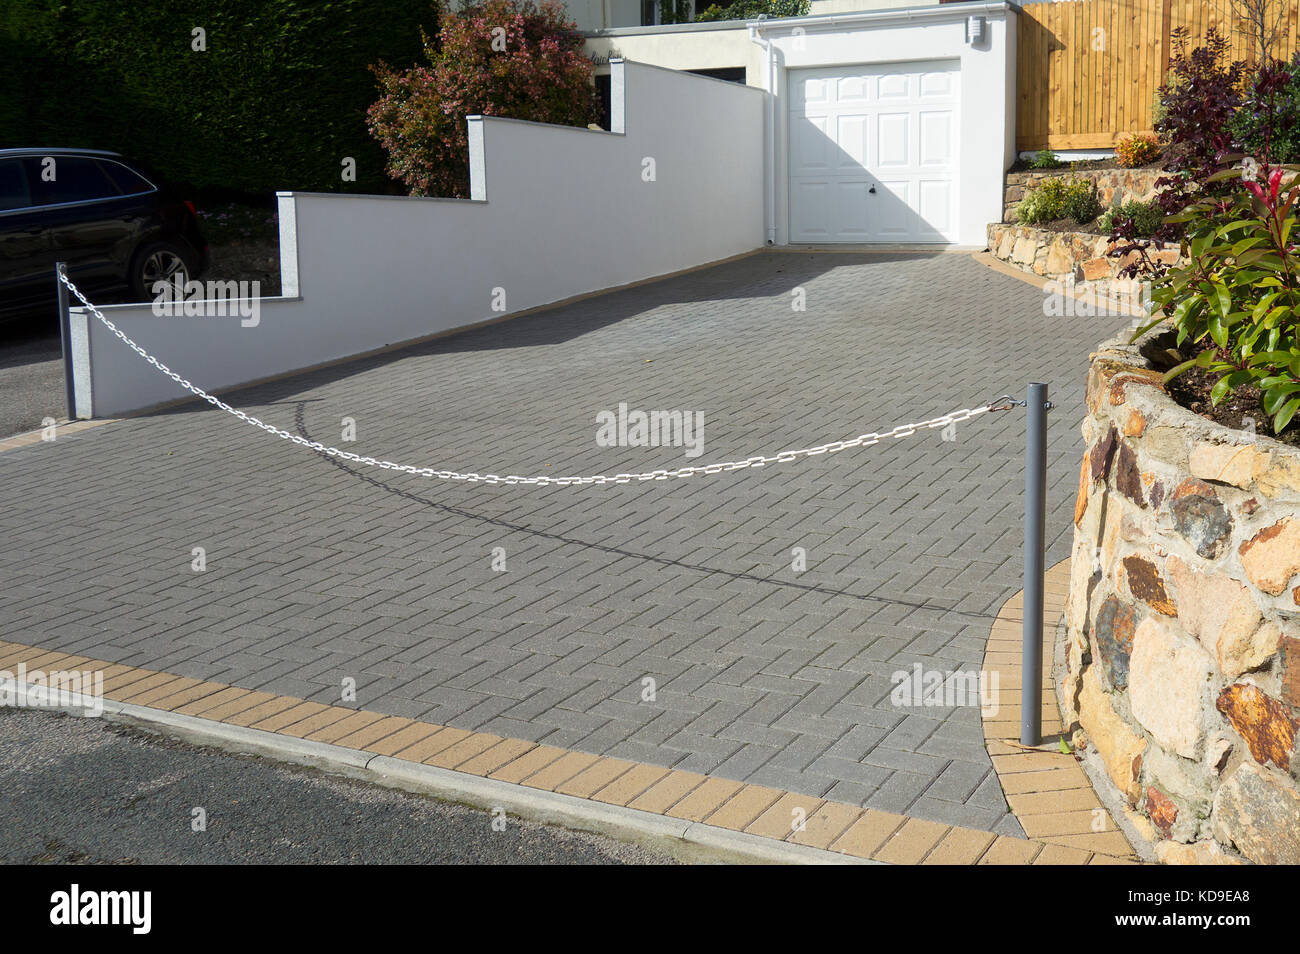 how to make a driveway